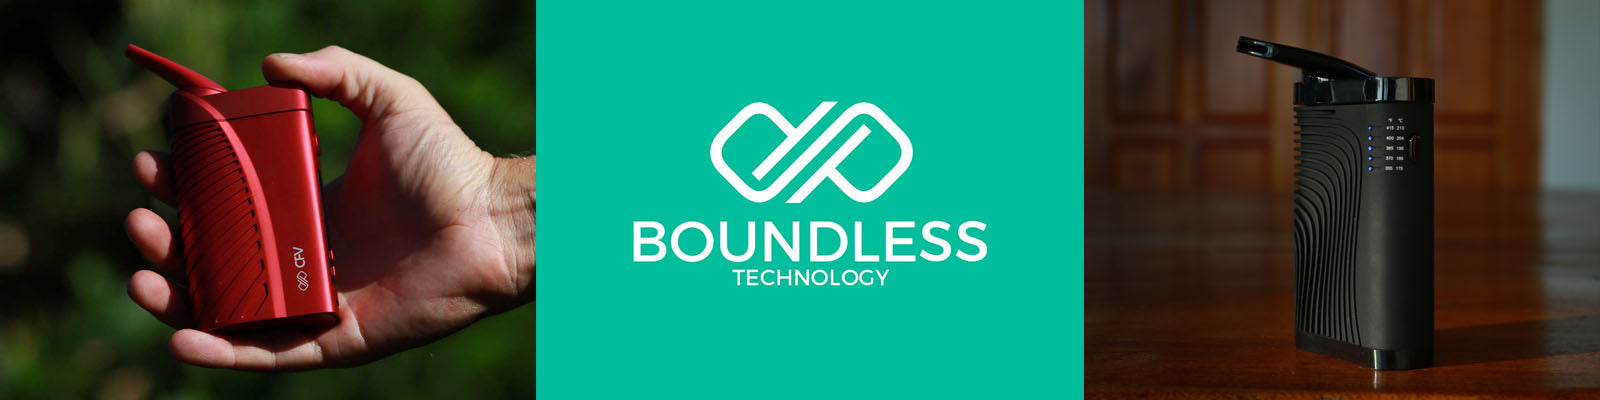 Boundless Vaporizer UK collcetion